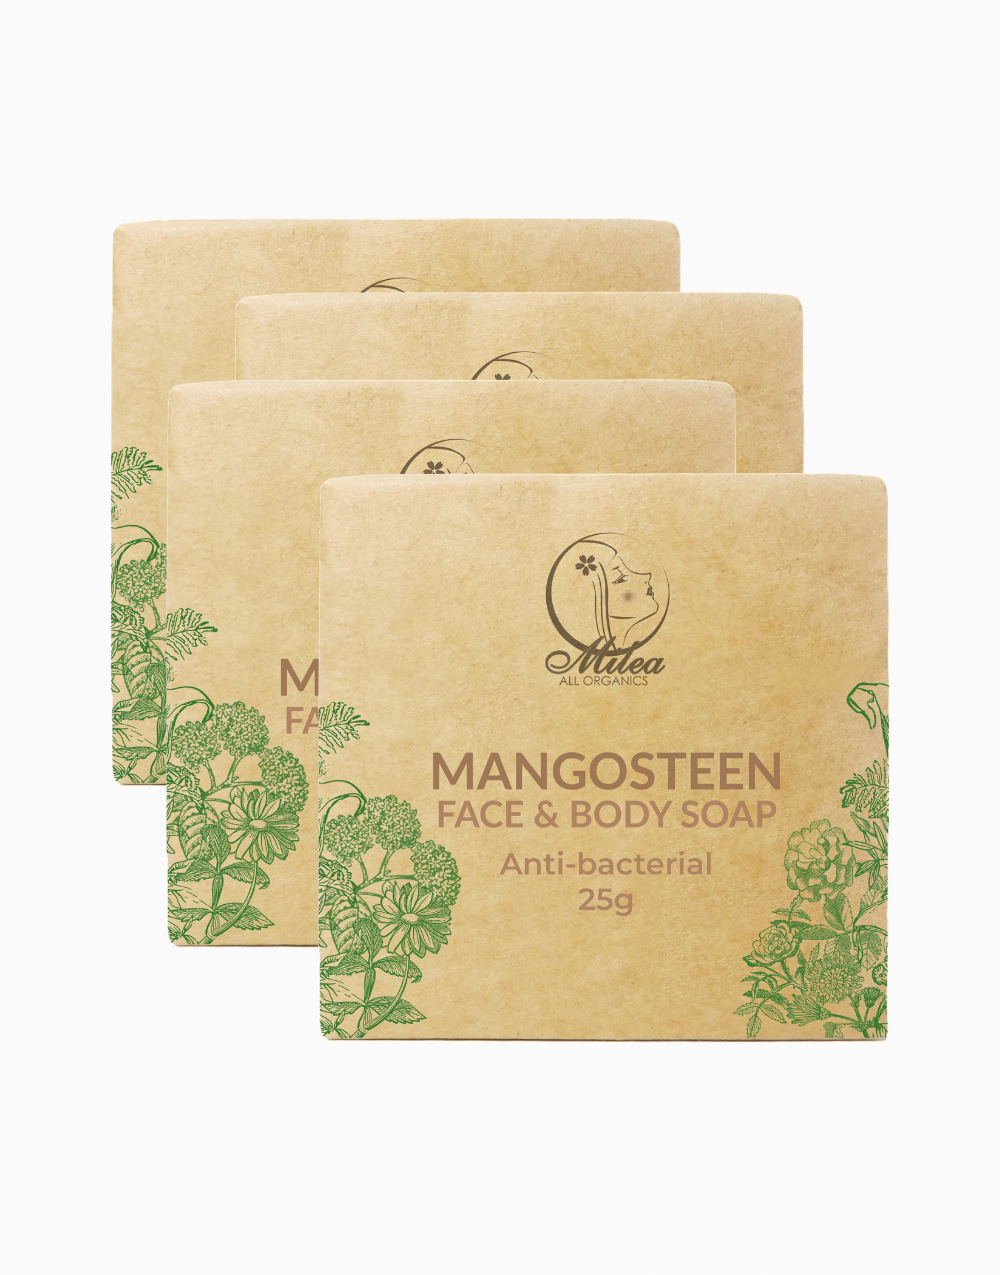 Mangosteen Soap (25g x 4pcs) by Milea